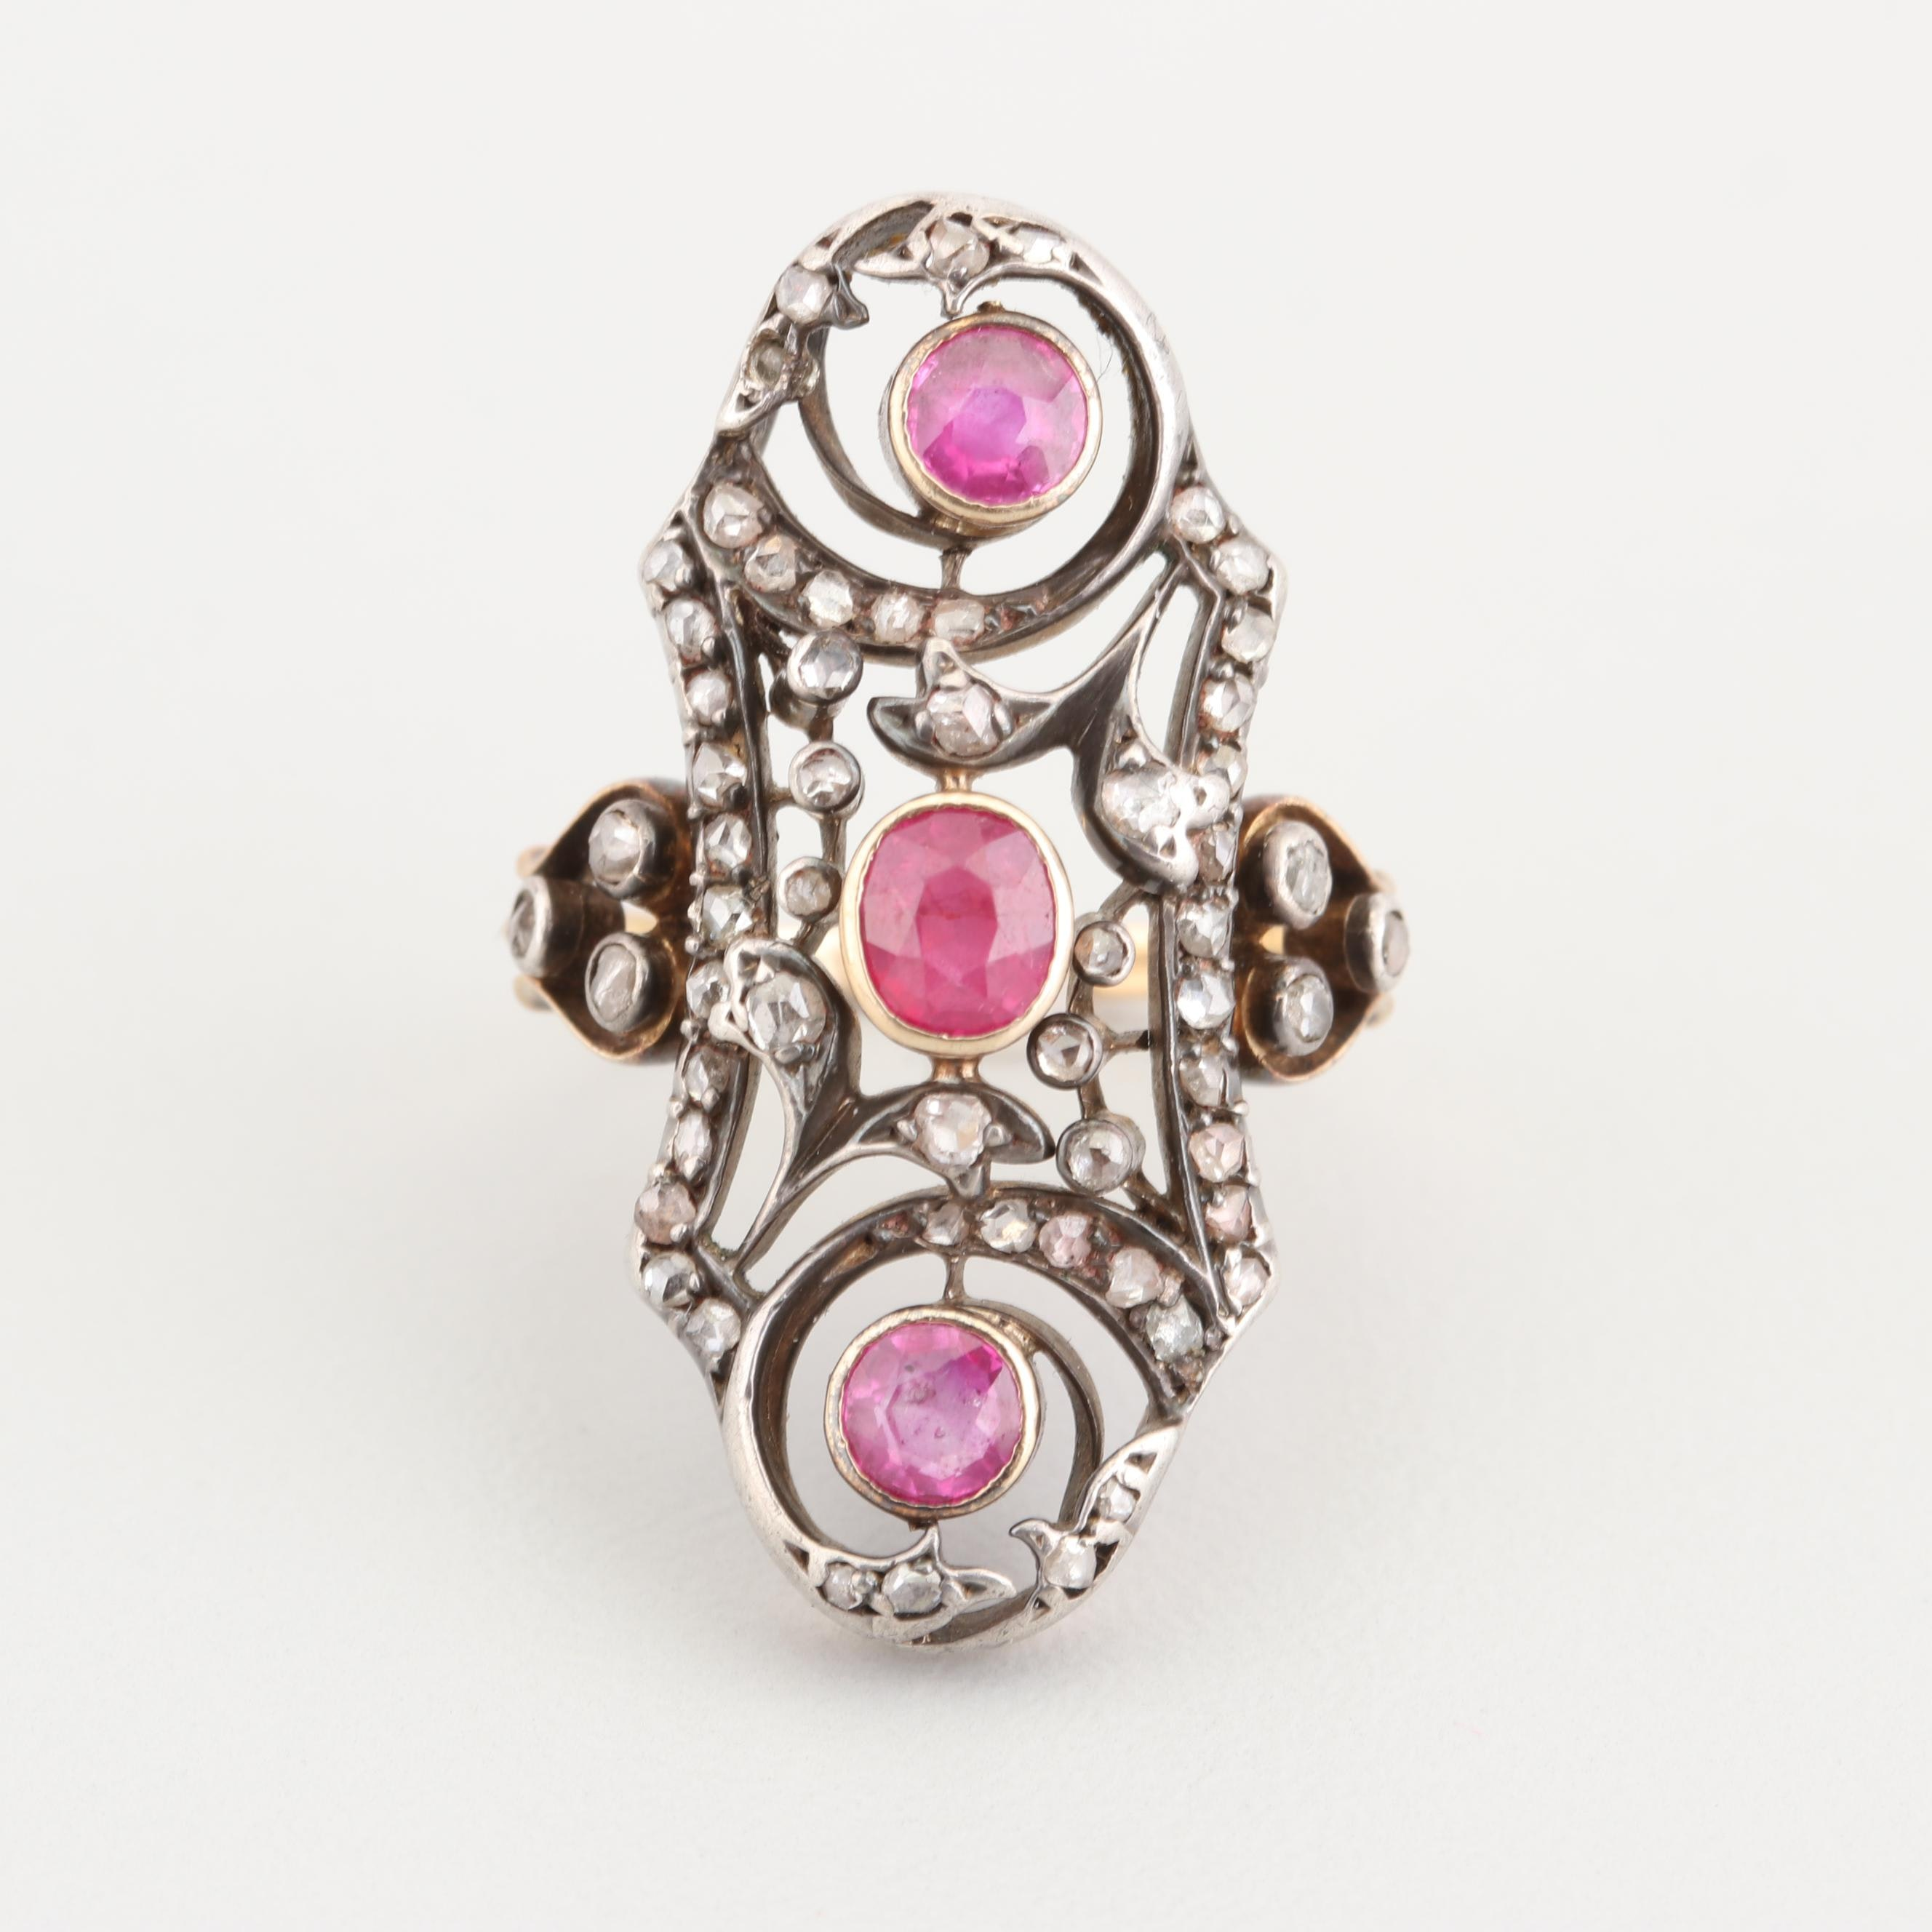 Edwardian Silver Topped 14K Yellow Gold Ruby and Diamond Ring